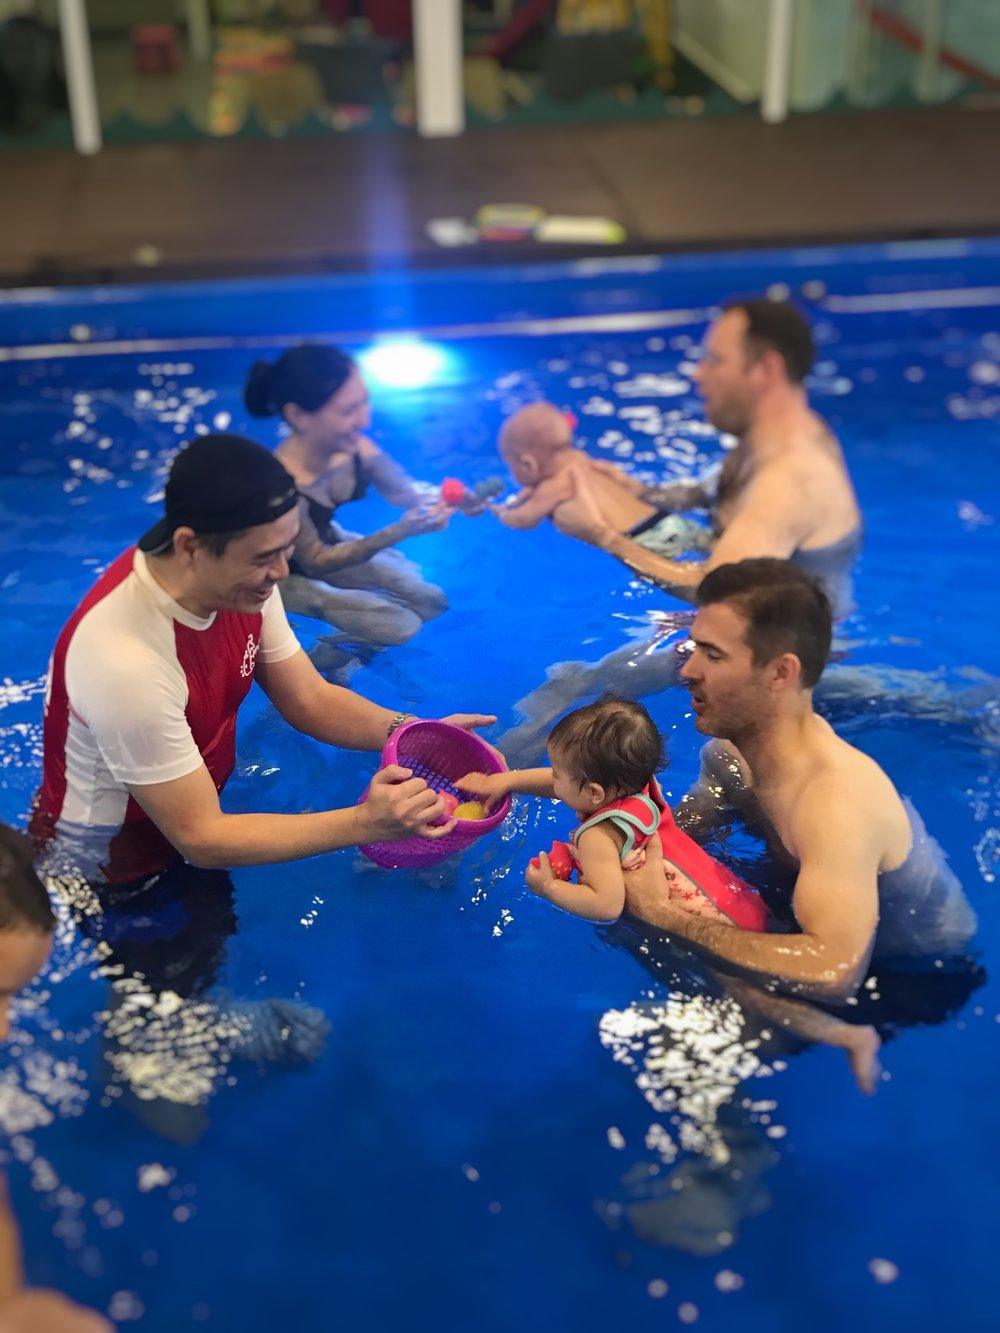 There's songs, there's games and under it all are steps towards getting these babies to swim independently!